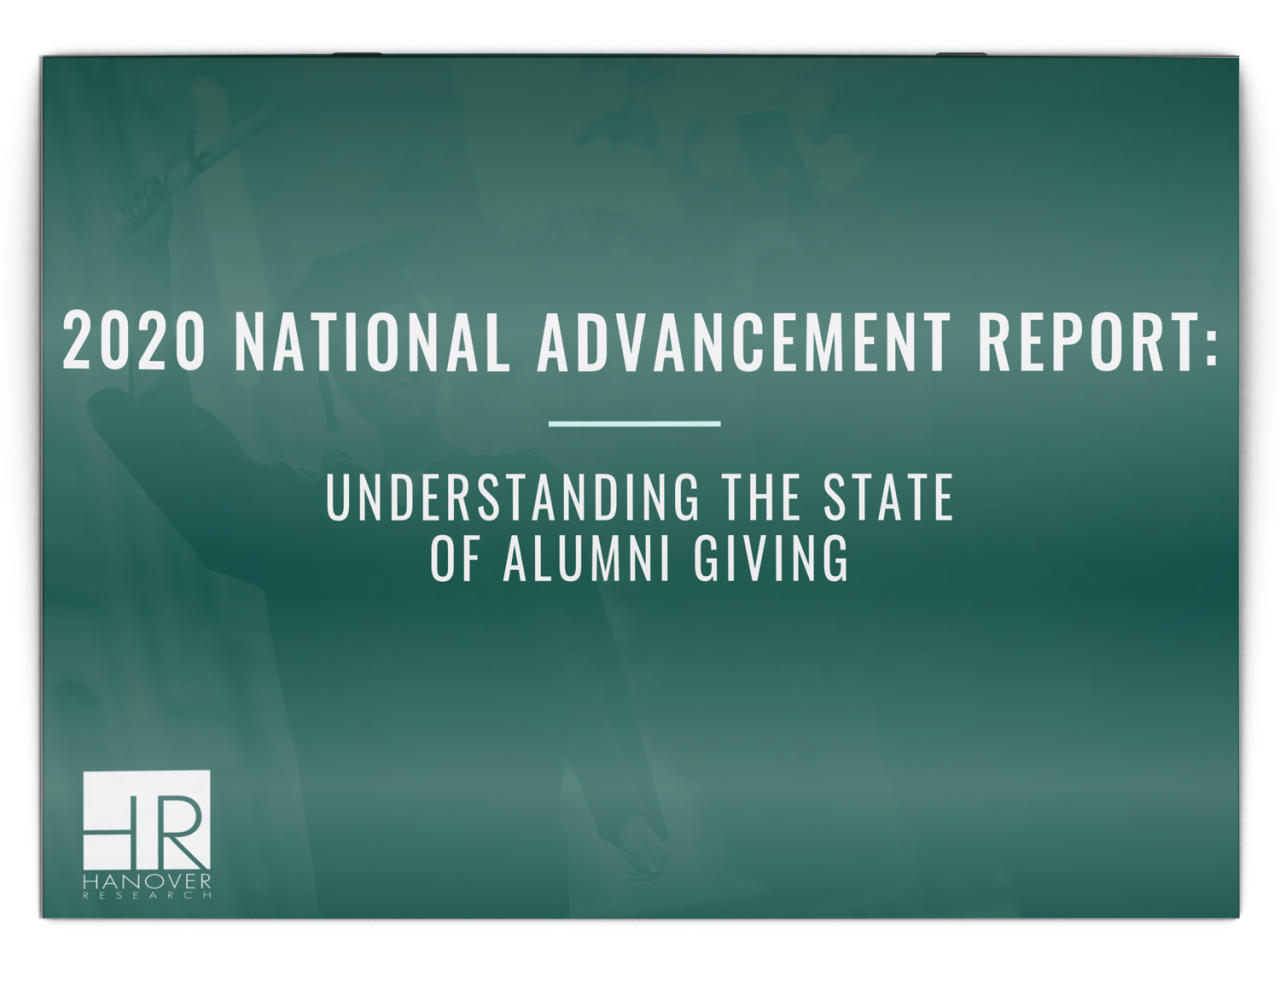 2020 National Advancement Report: Understanding the State of Alumni Giving